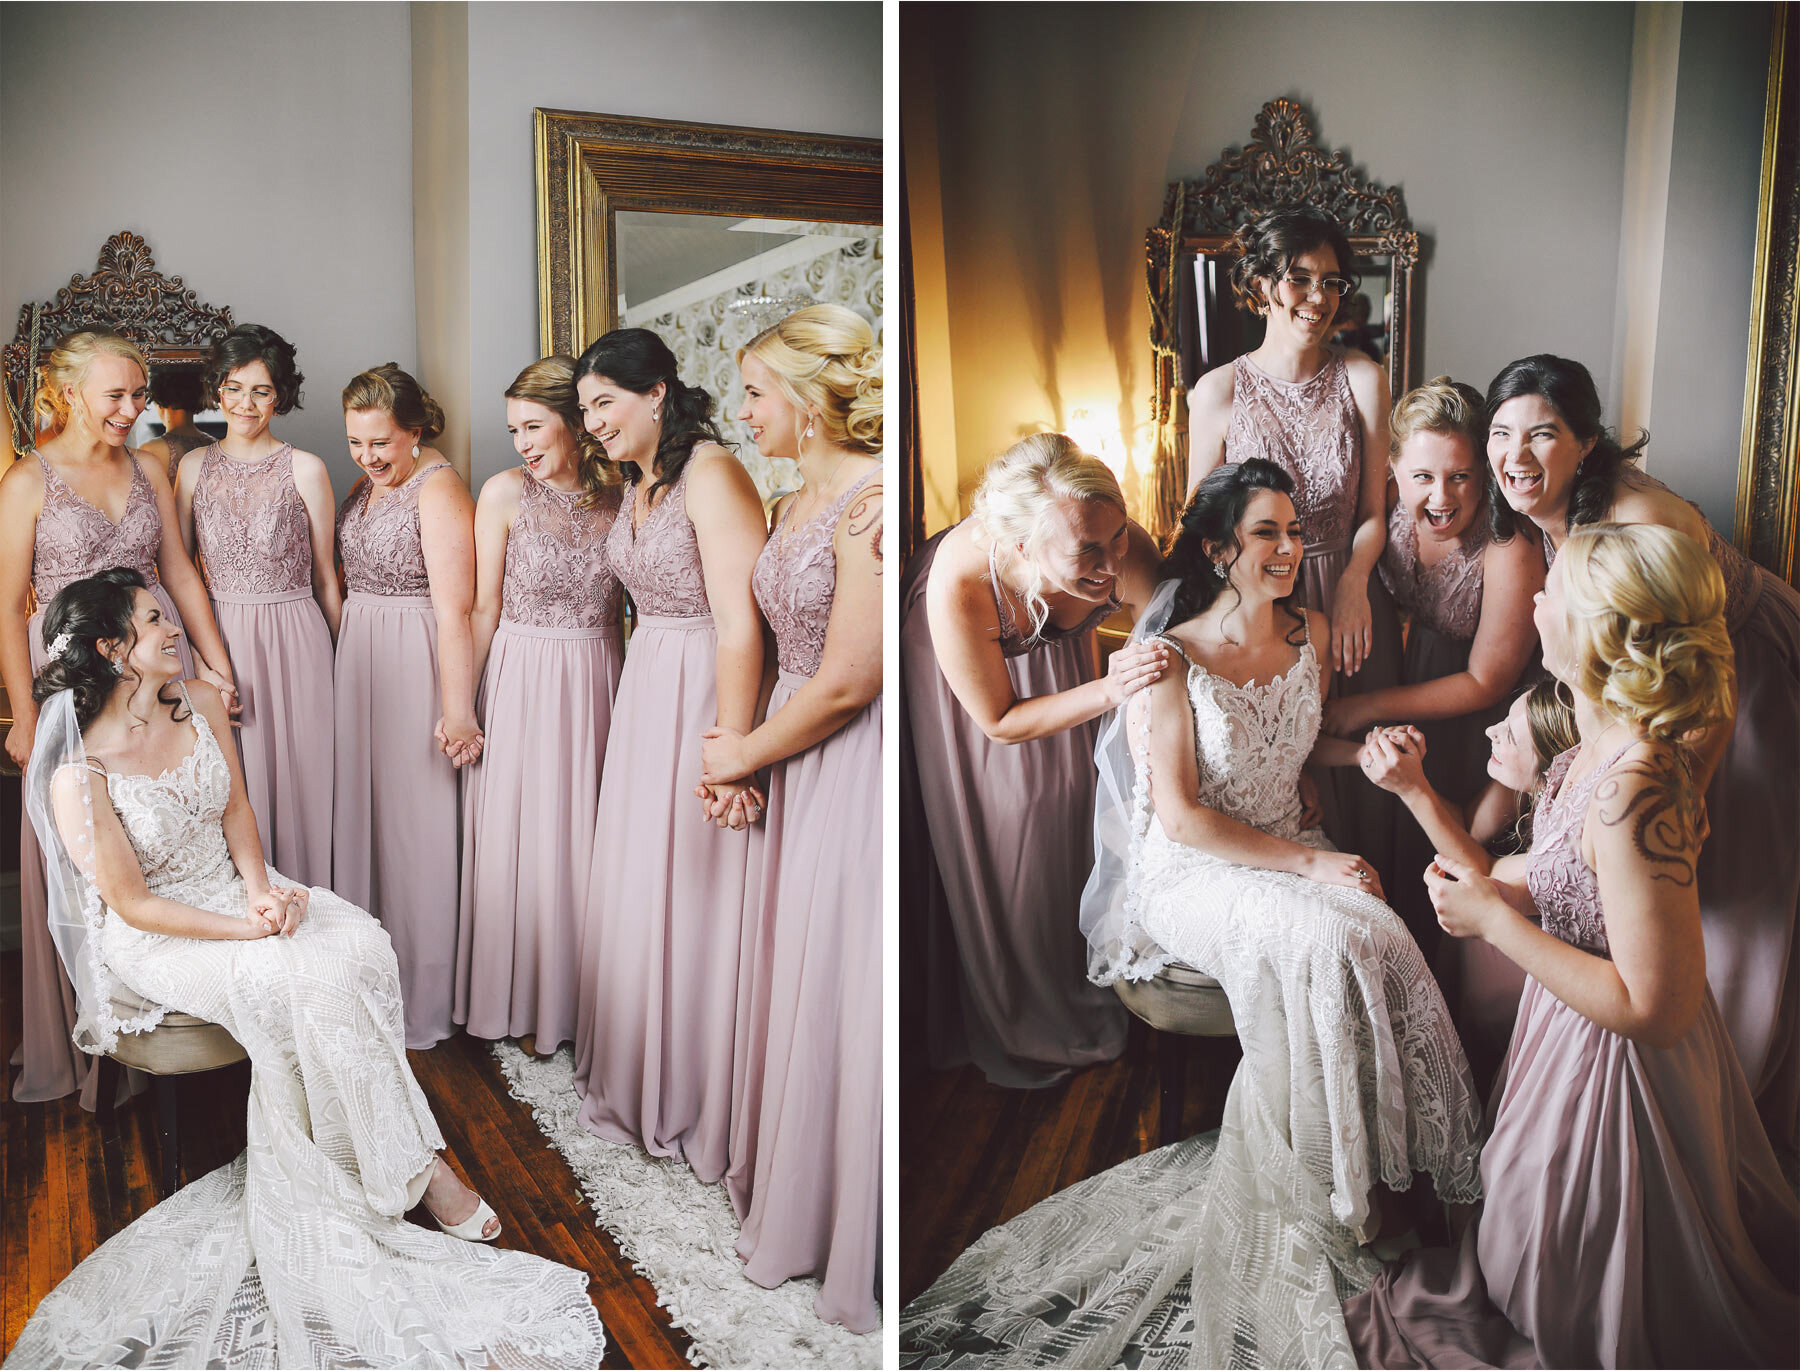 02-Wedding-by-Vick-Photography-Minneapolis-Minnesota-Semple-Mansion-Historic-Venue-Bride-Bridesmaids-Kaitlyn-and-Nate.jpg